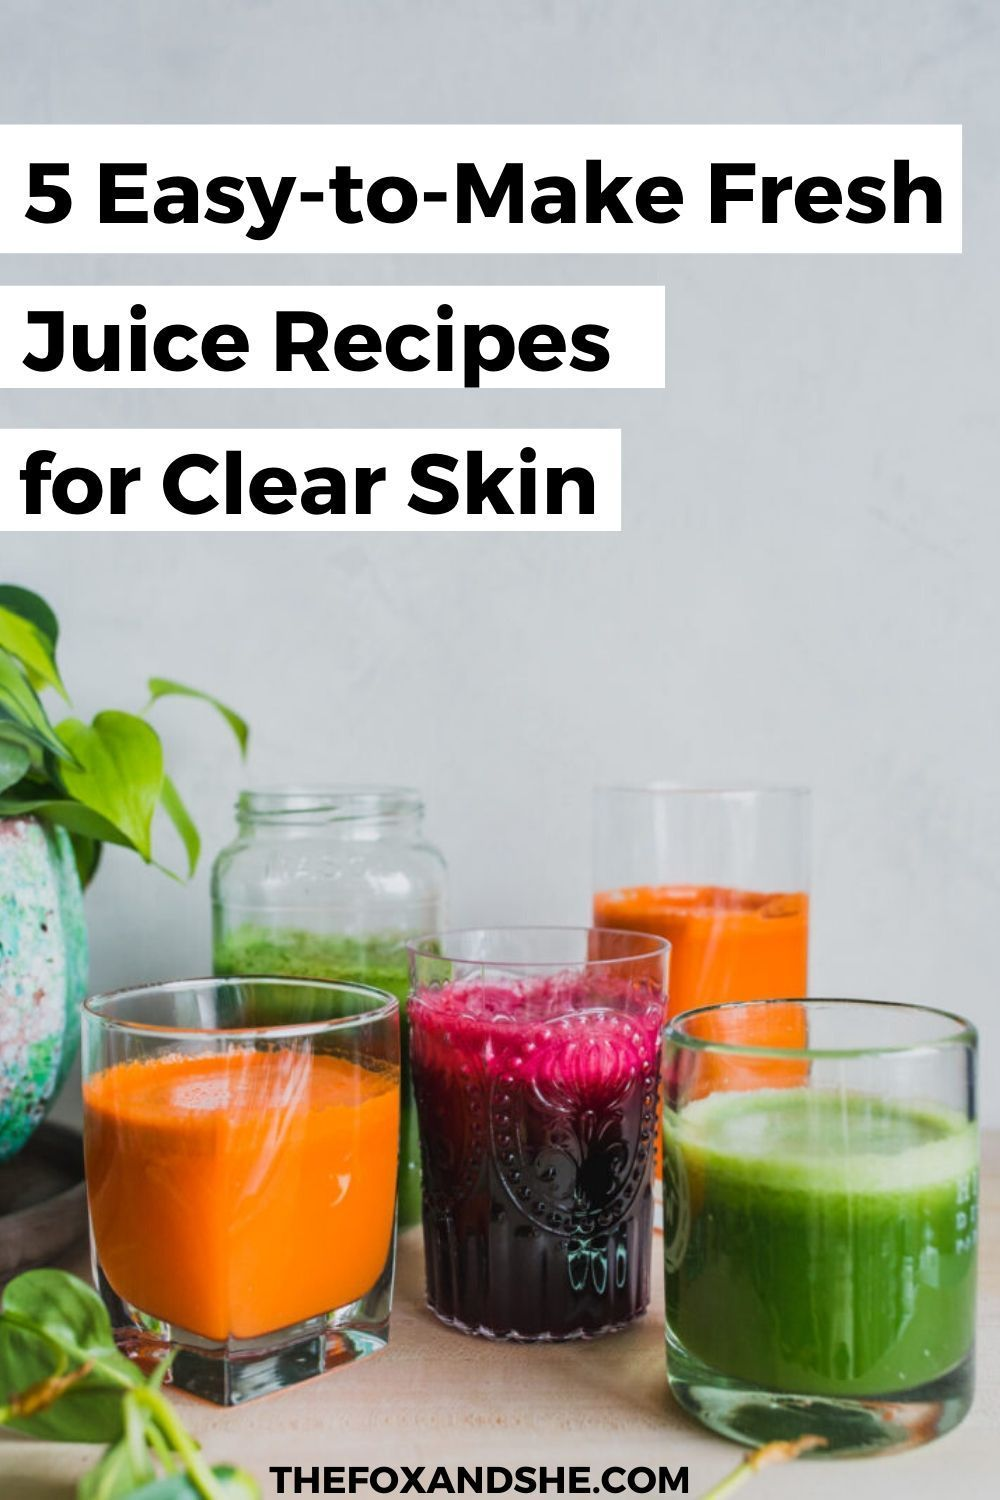 Looking for juice recipes for beginners? These juices recipes for skin are amazing skin detox drinks and will boost your healthy living. I love a good healthy green juice recipe for the morning because it gives me energy. Click to see all the juice recipes for energy and clear skin and add this to your wellness inspiration. #greenjuice #healthyliving #clearskin